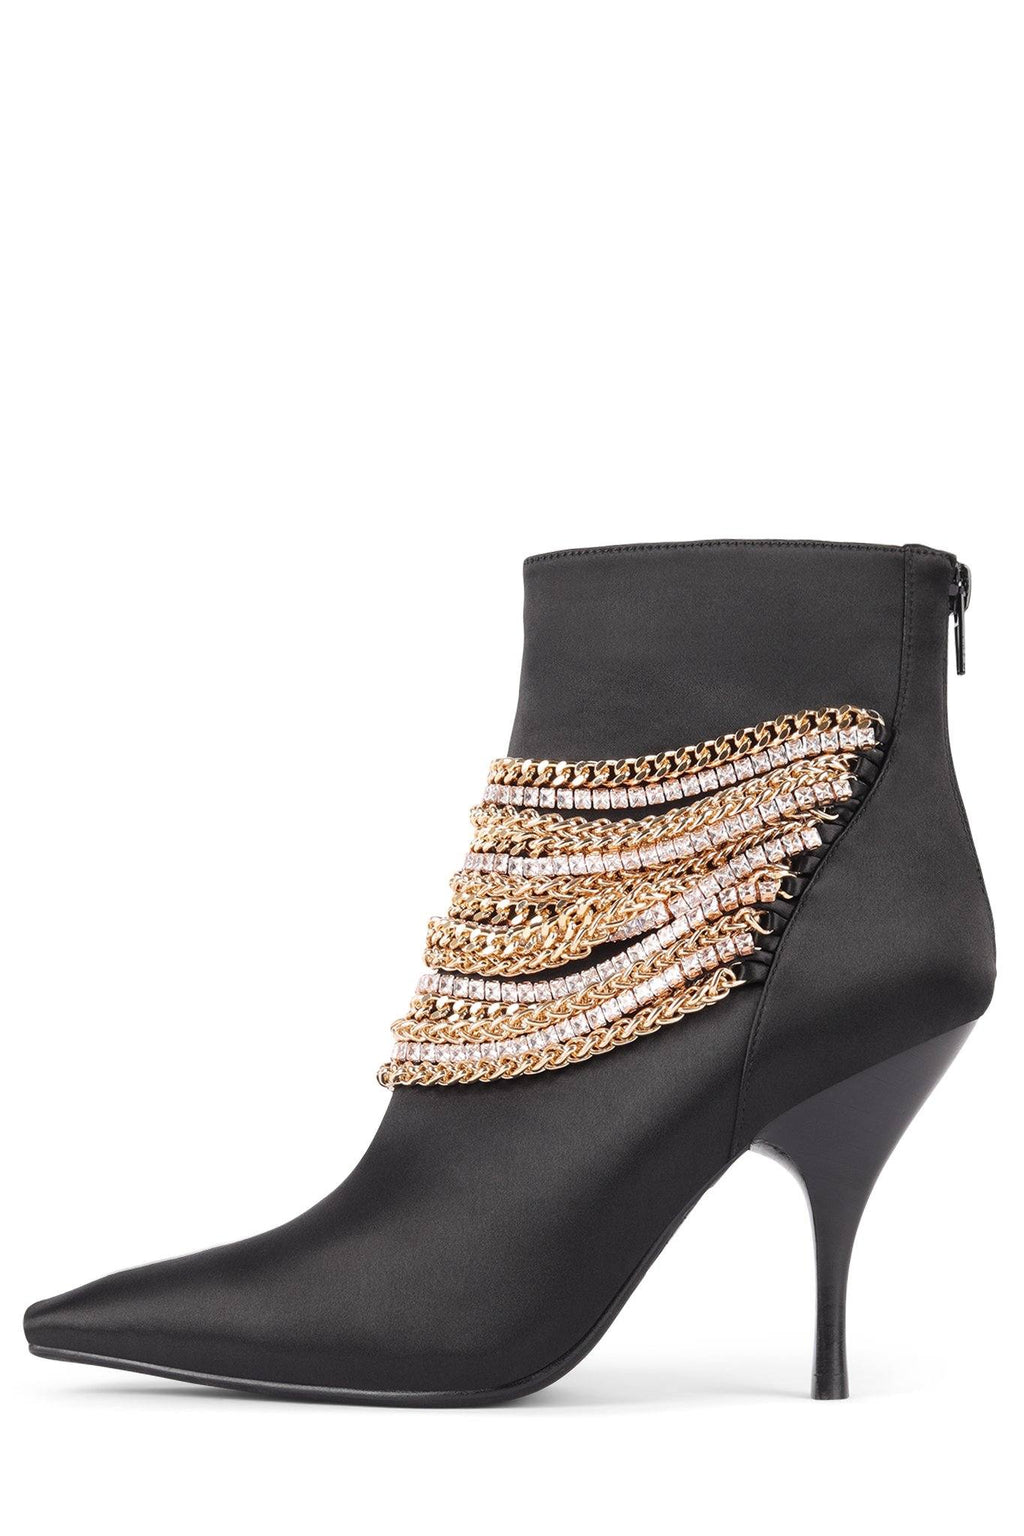 CHAINGE Heeled Bootie STRATEGY Black Satin Gold 6